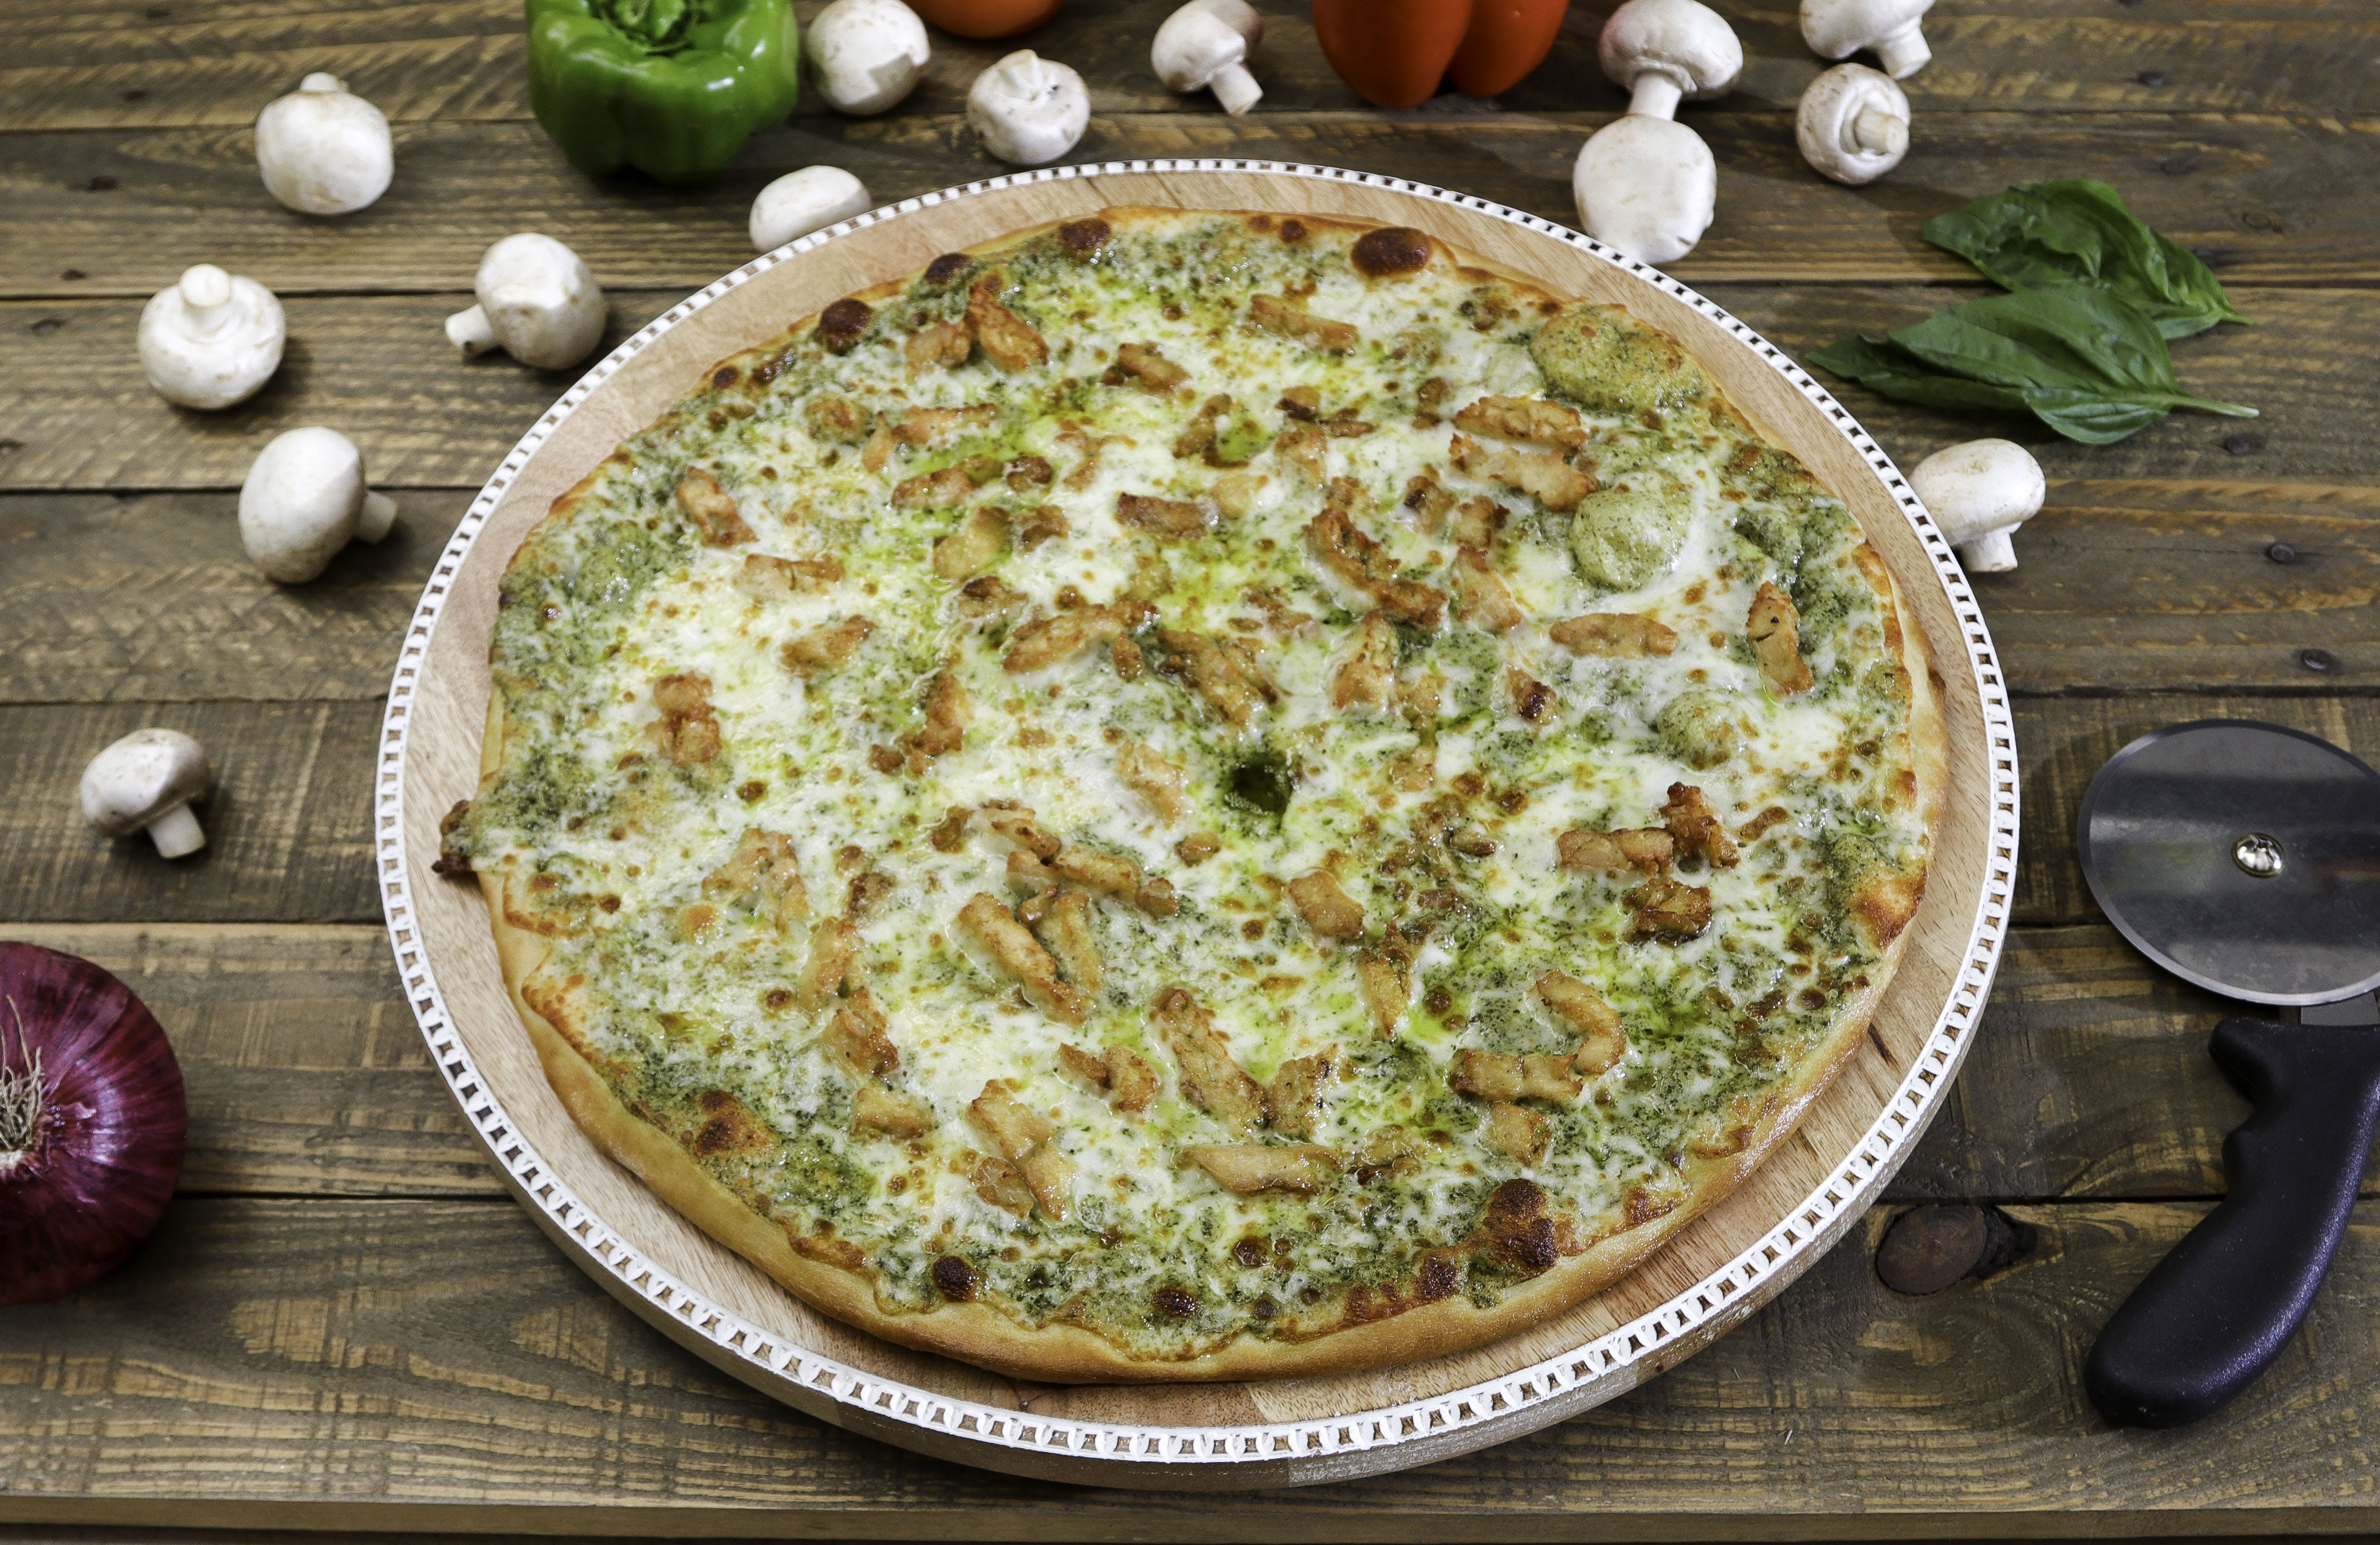 Pesto Chicken Pizza from Ameci Pizza & Pasta - Lake Forest in Lake Forest, CA